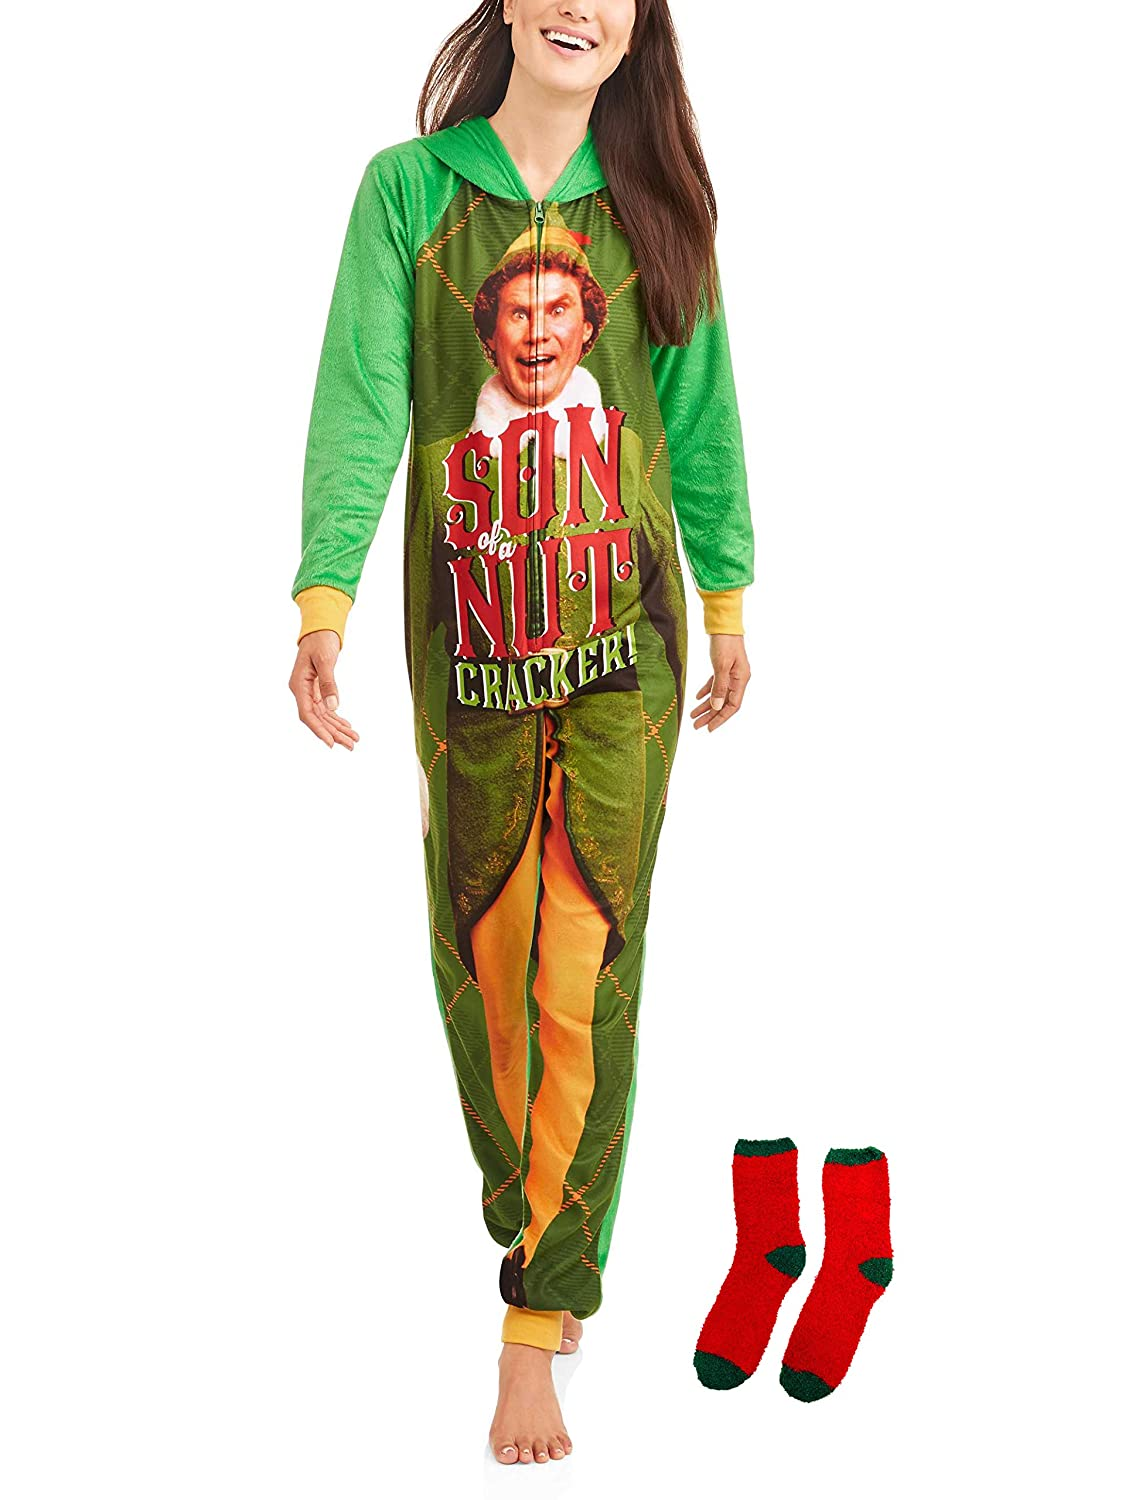 Elf Buddy The Women s Pajama Union Suit One Piece Sleepwear w Matching Sock  Gift Set at Amazon Women s Clothing store  0c502fca11f1